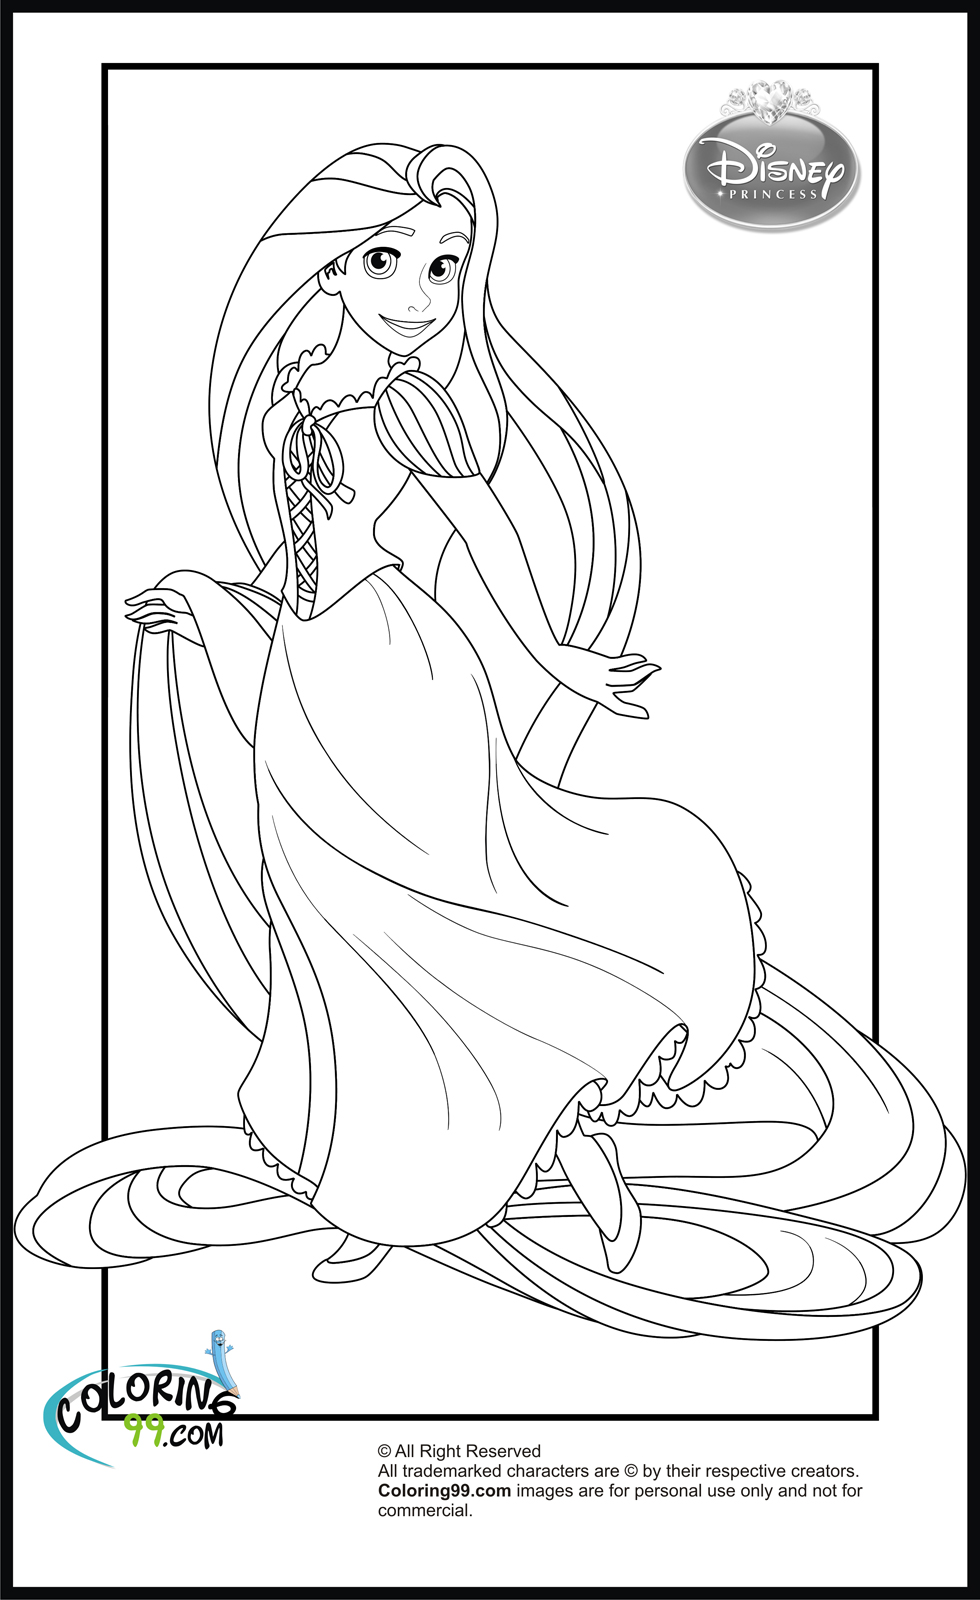 Disney Princess Coloring Pages